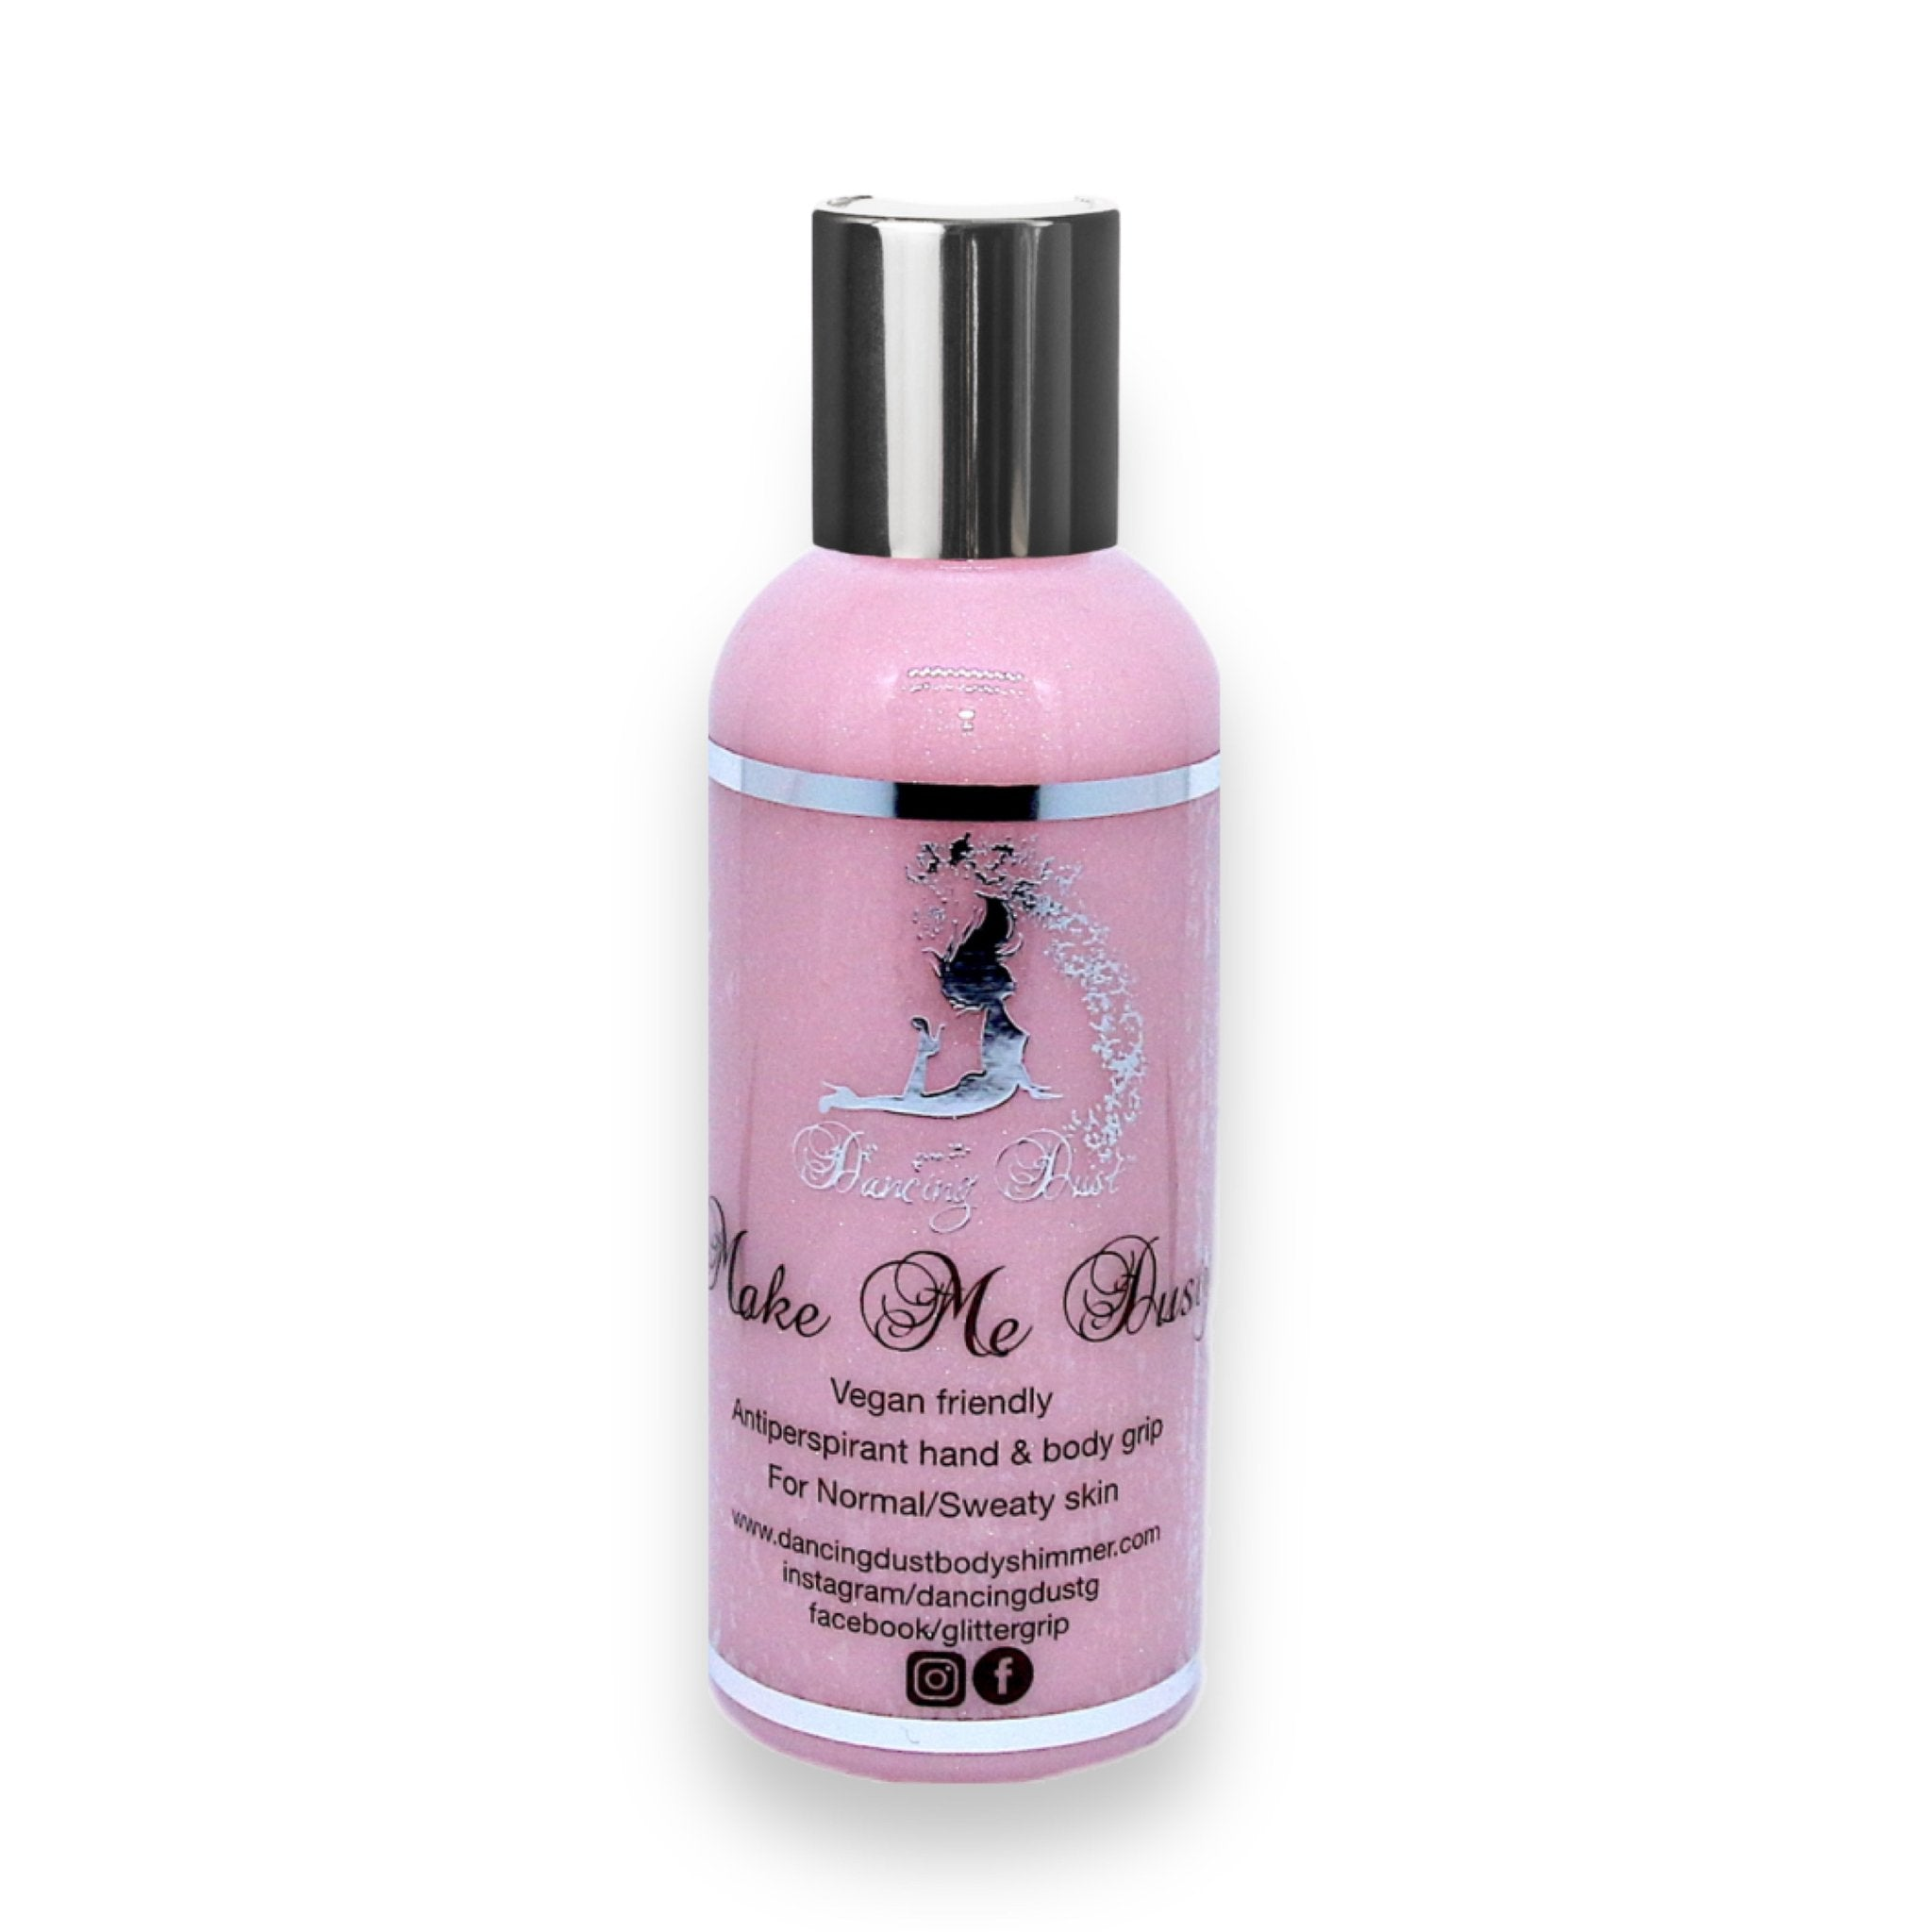 Dancing Dust- Make me Dusty - Antiperspirant pole grip aid for normal/sweaty skin 80ml - Pink